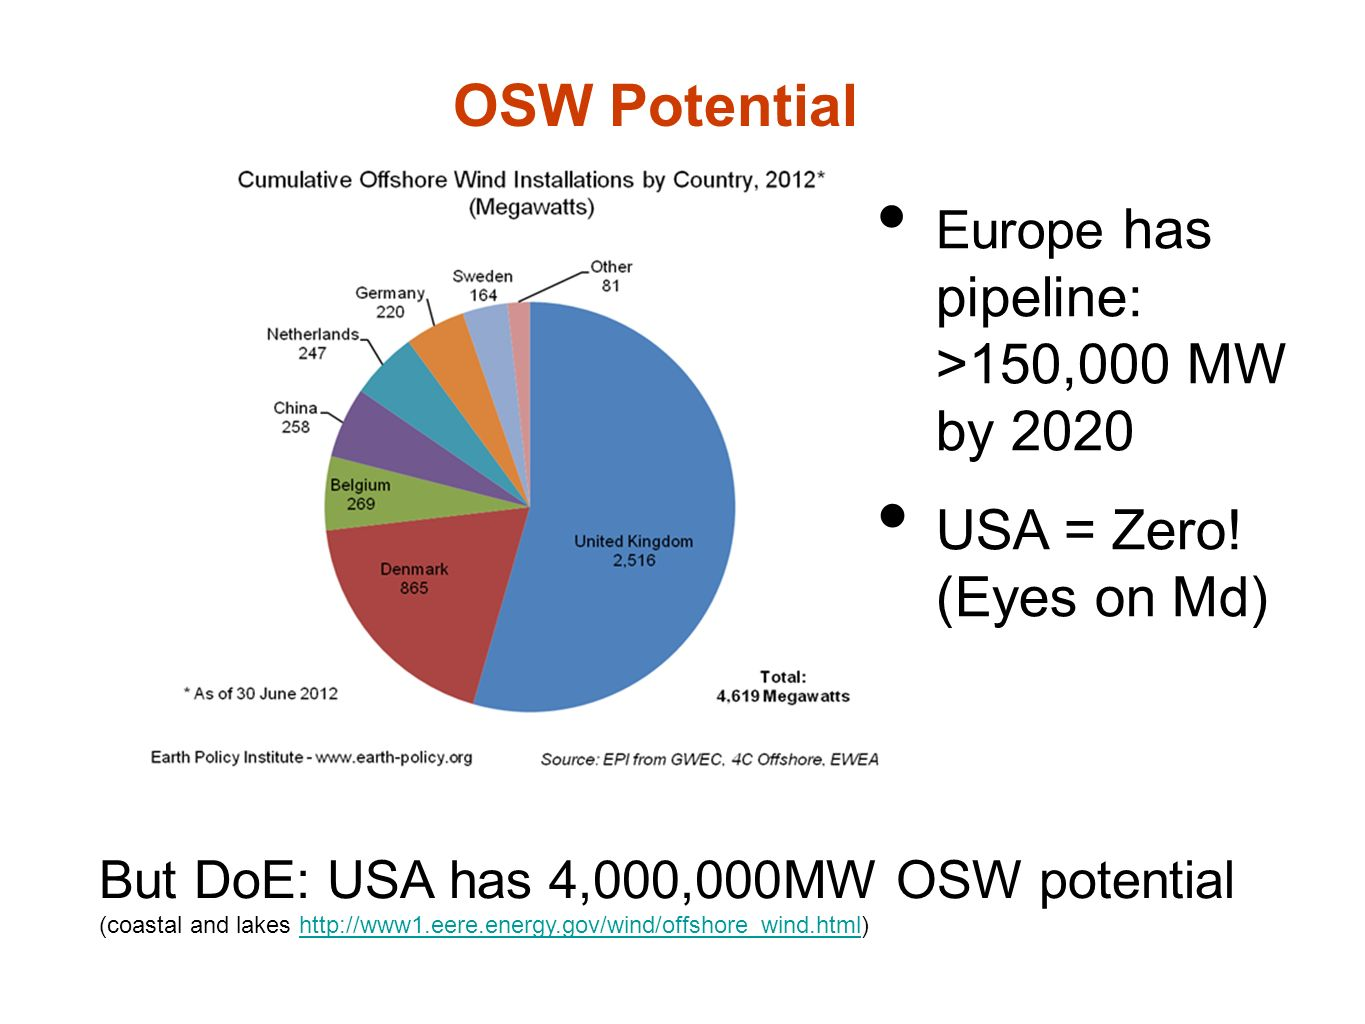 But DoE: USA has 4,000,000MW OSW potential (coastal and lakes http://www1.eere.energy.gov/wind/offshore_wind.html)http://www1.eere.energy.gov/wind/offshore_wind.html OSW Potential Europe has pipeline: >150,000 MW by 2020 USA = Zero.